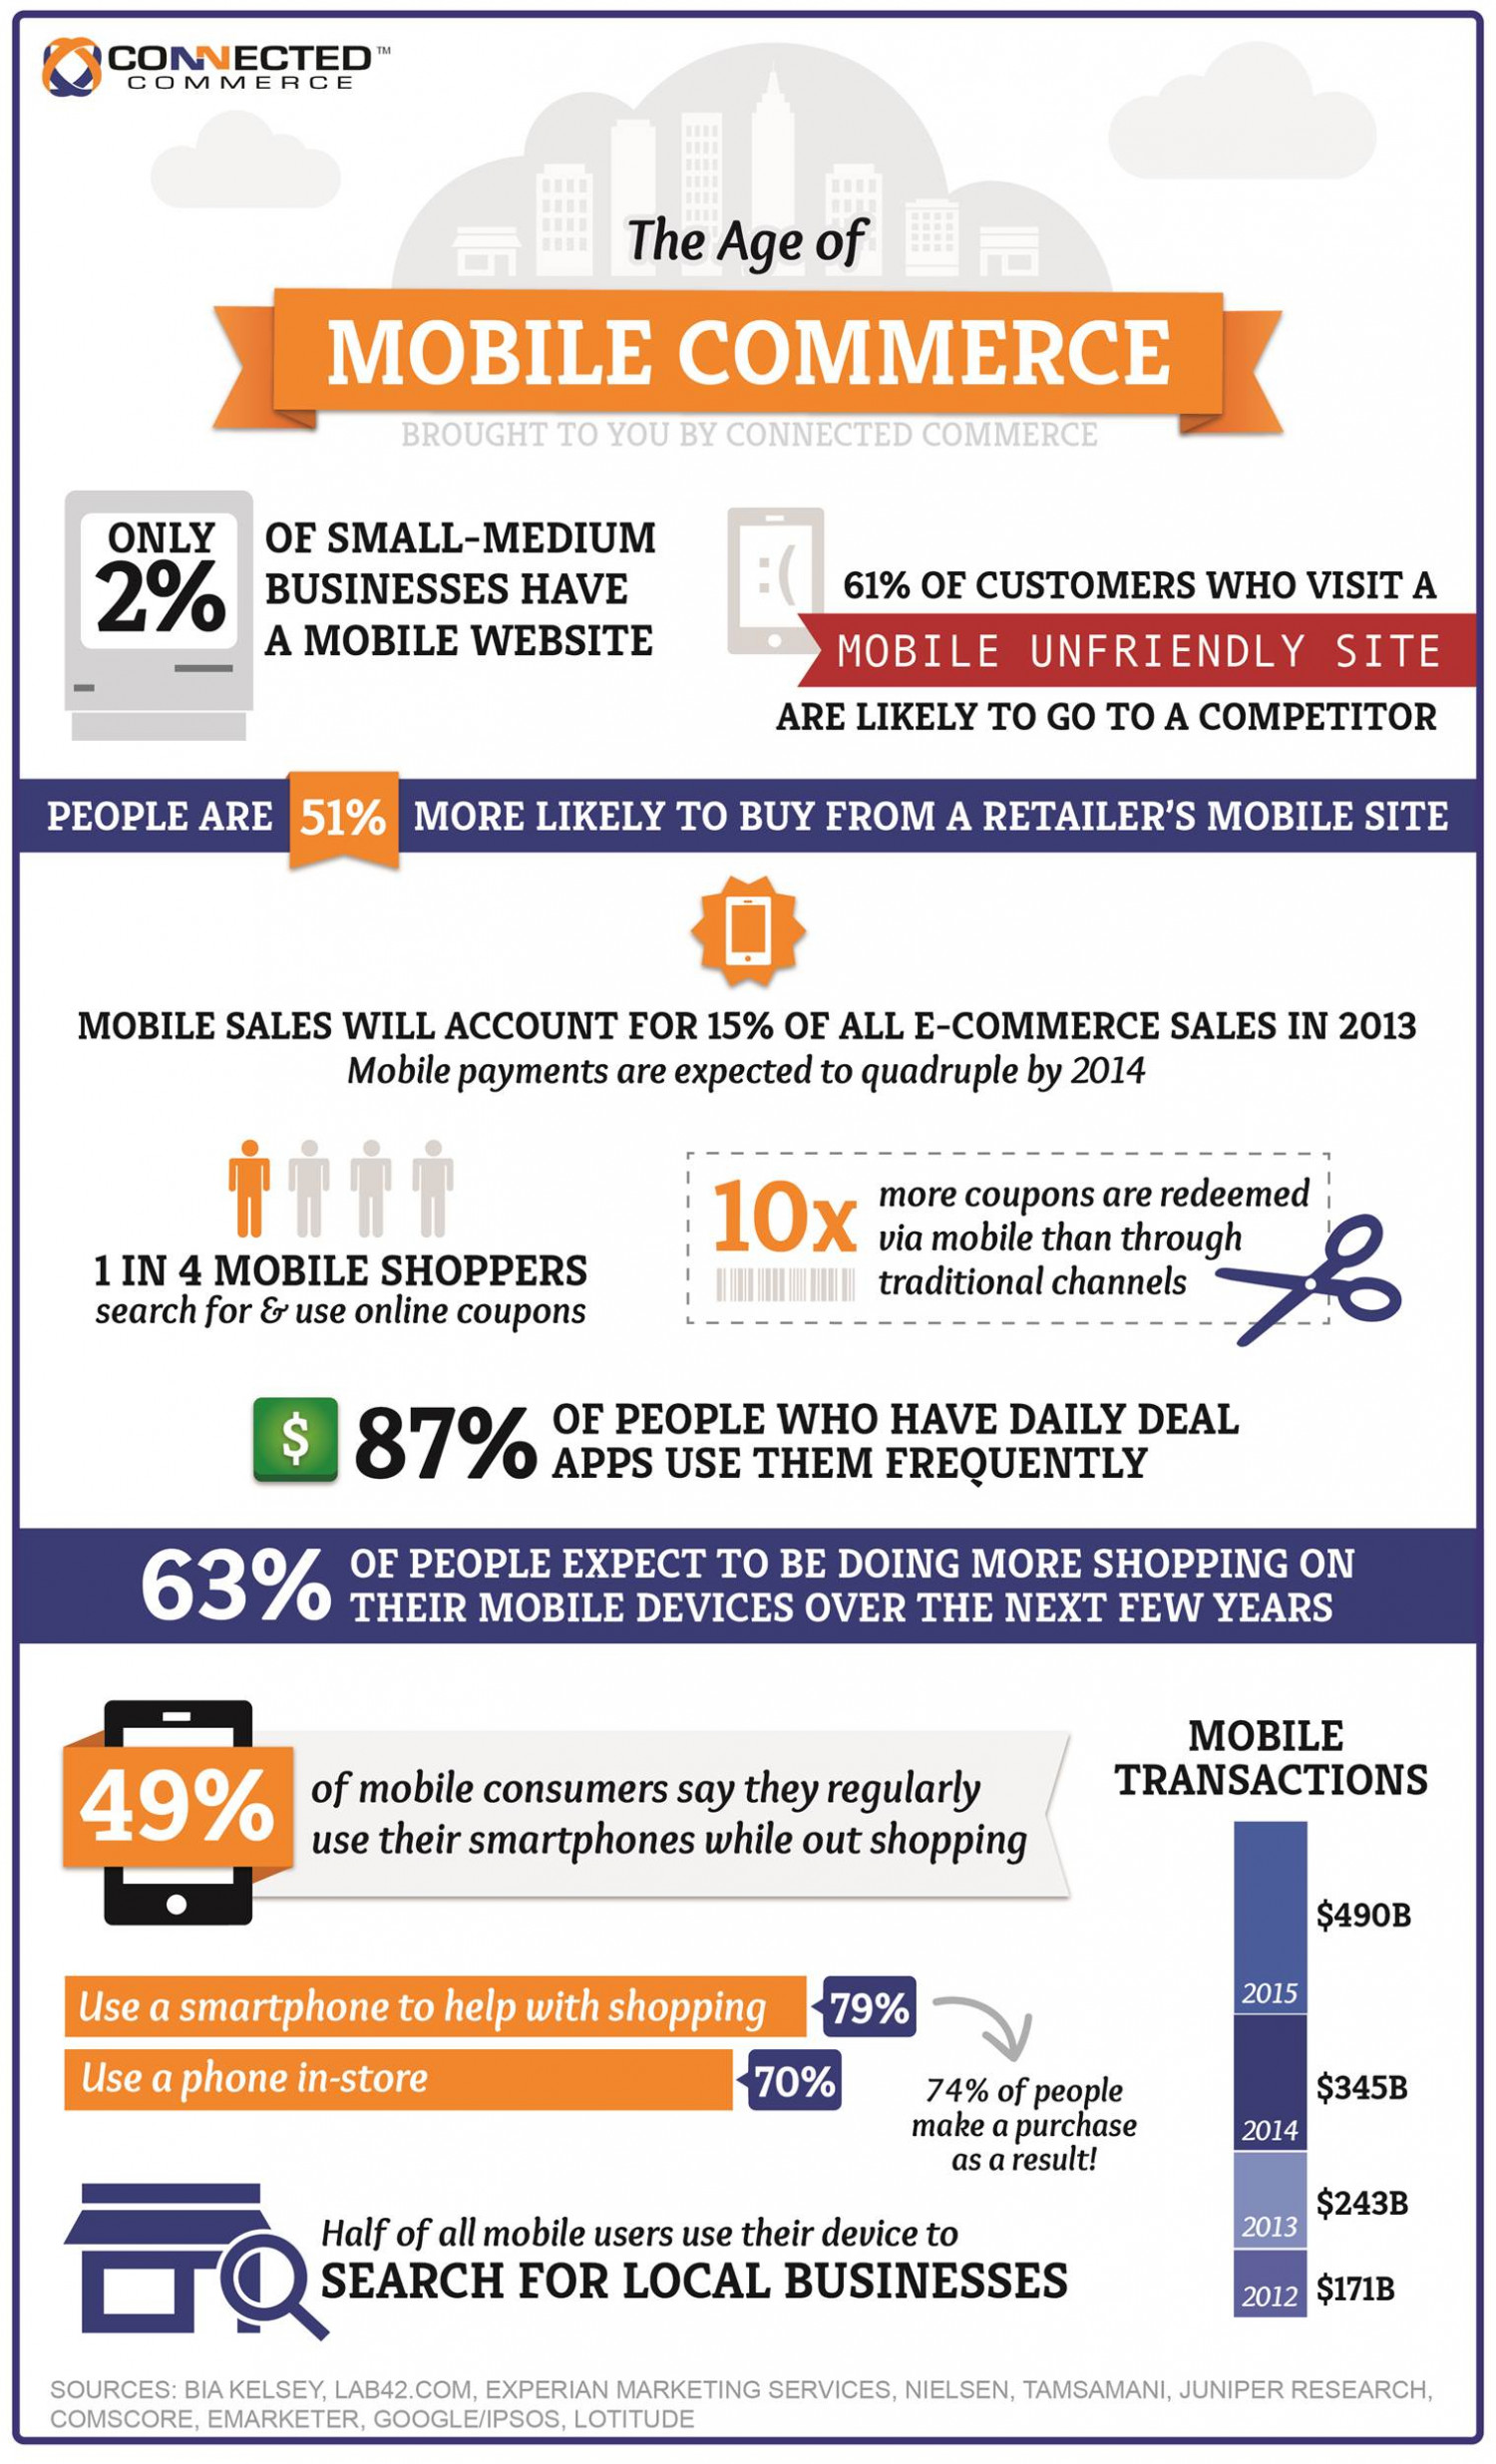 The Age of Mobile Commerce Infographic